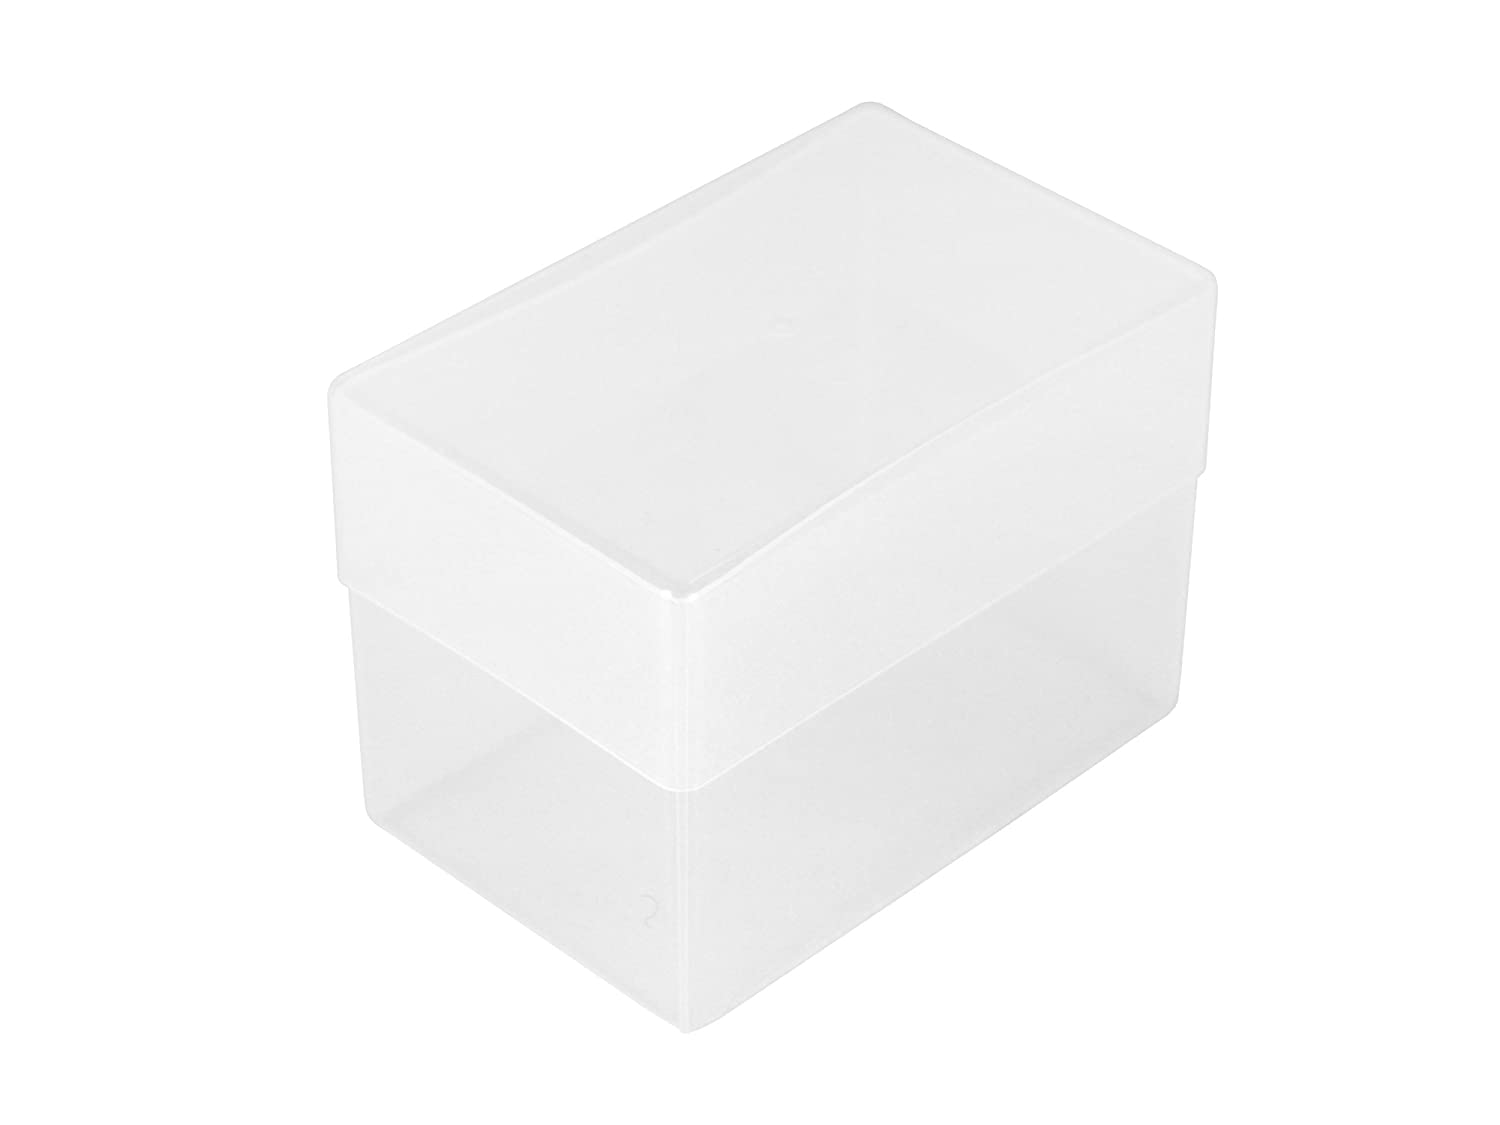 PACK OF 10 CLEAR PLASTIC BUSINESS CARD / CRAFT BOXES 100mm x 65mm x ...